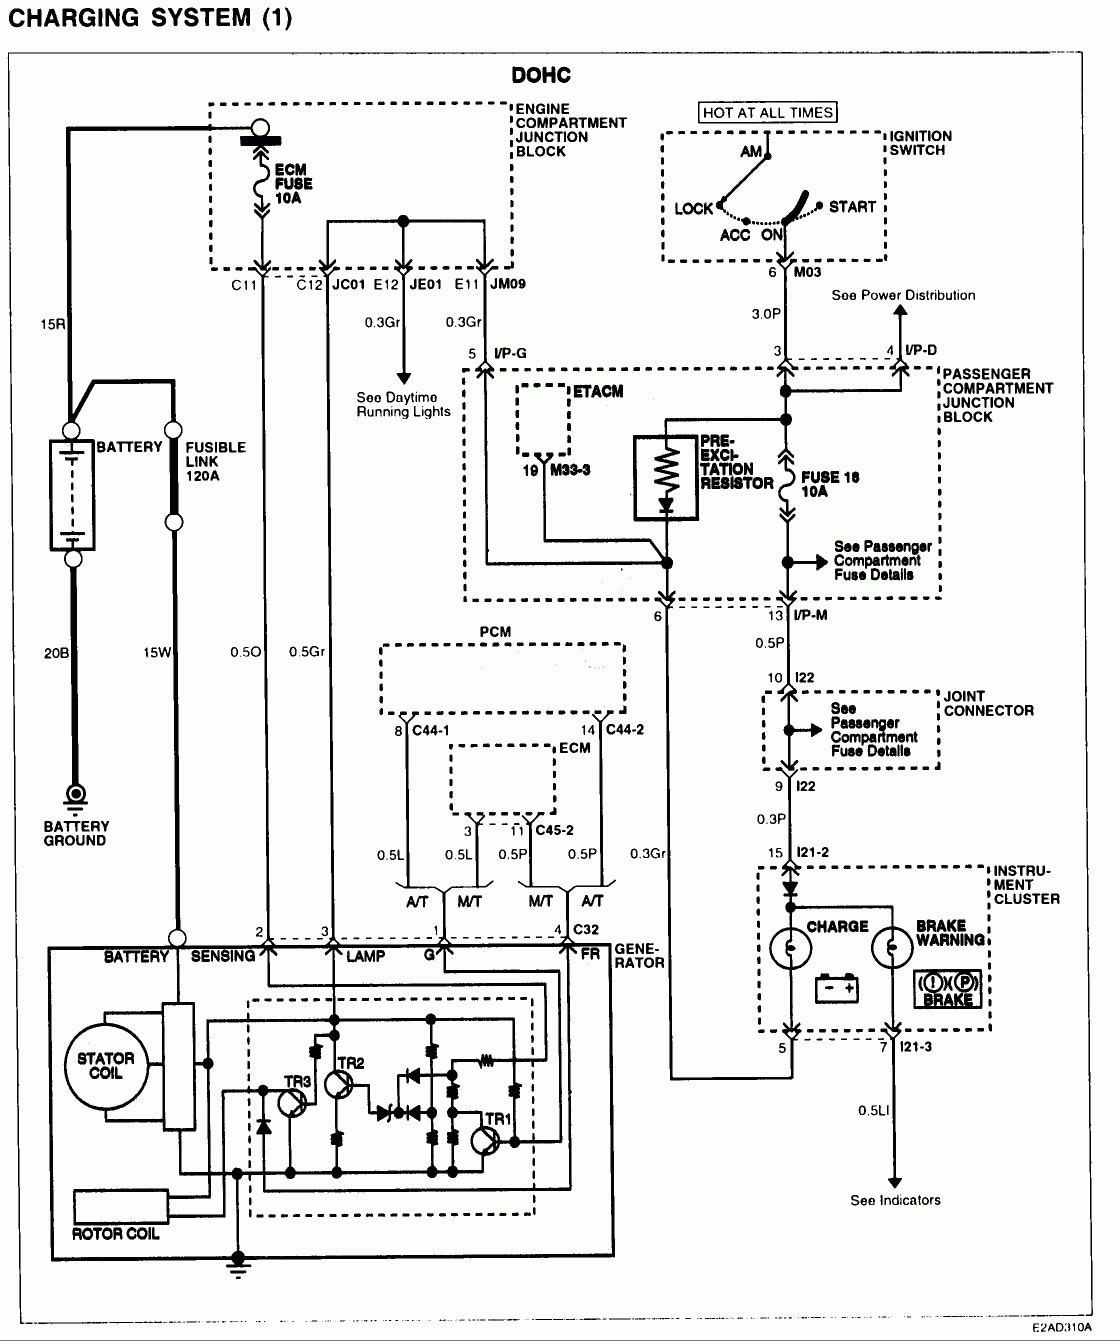 wiring diagram 2002 hyundai santa fe wiring diagram databasehyundai santa fe  interior diagram #17